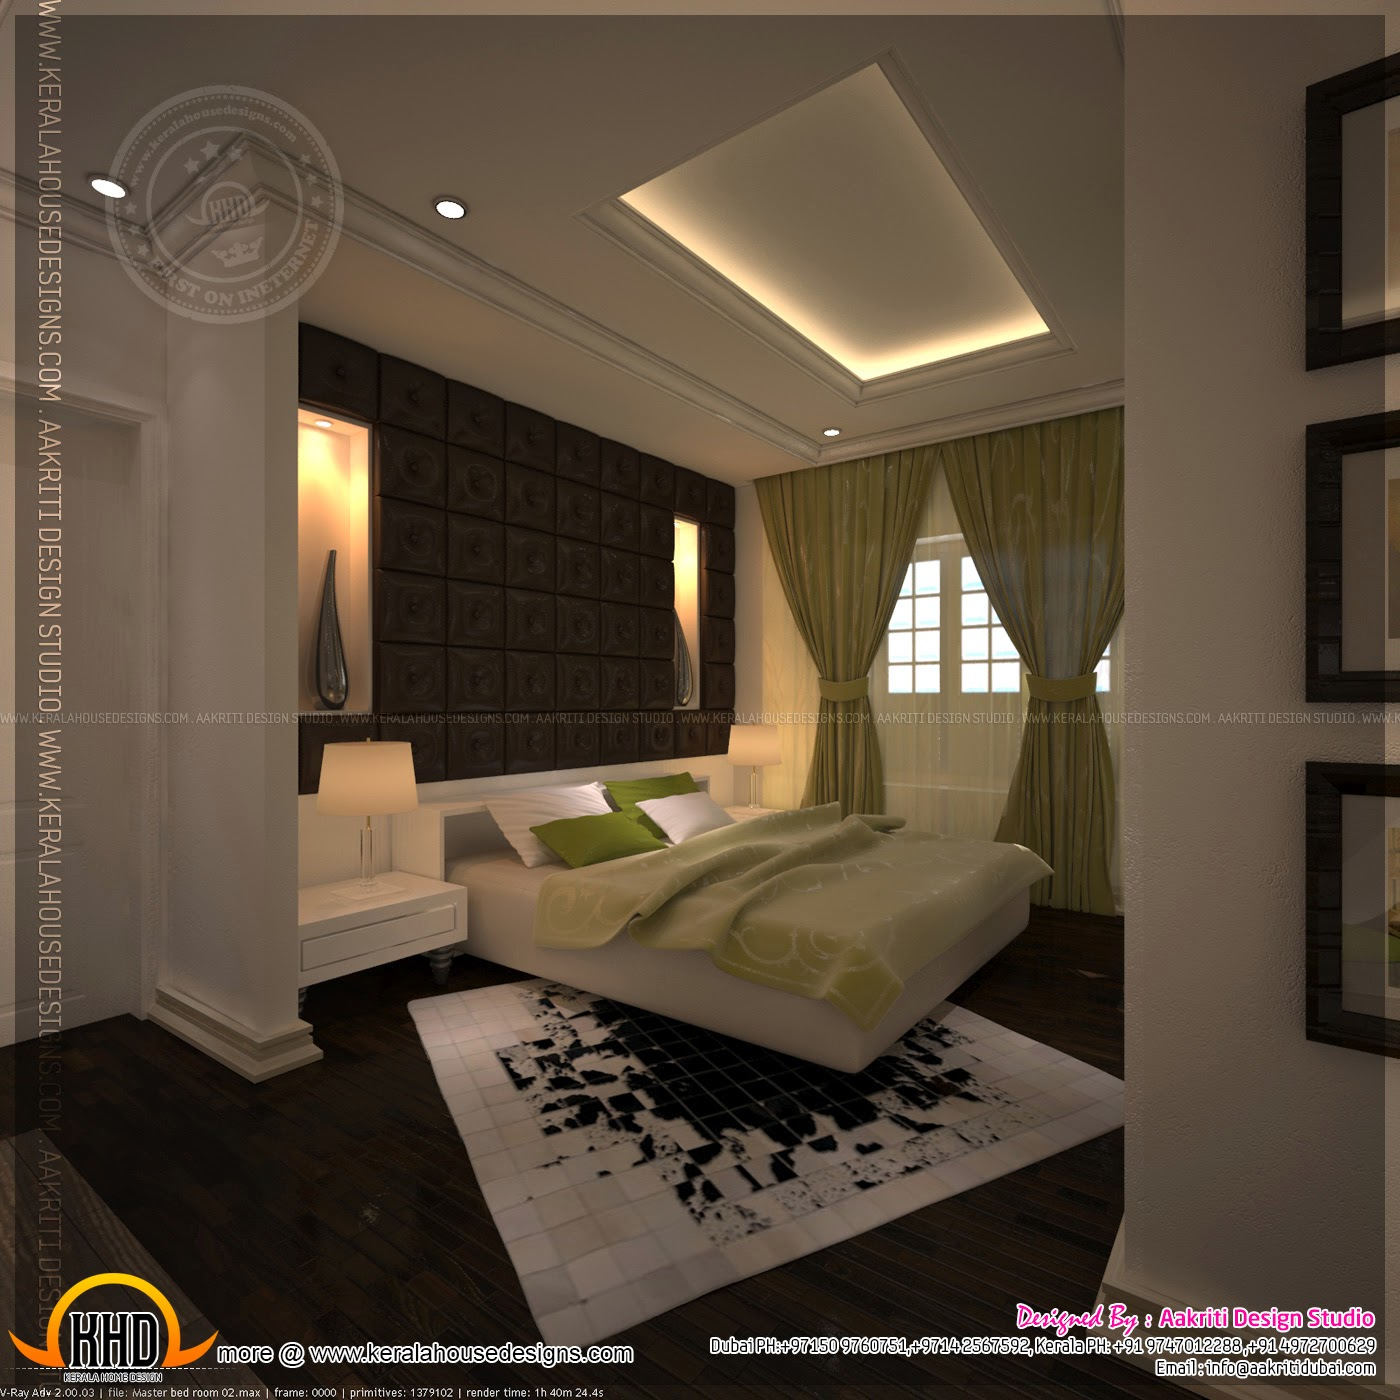 Master bedroom and bathroom interior design kerala home for Bedroom interior design photos